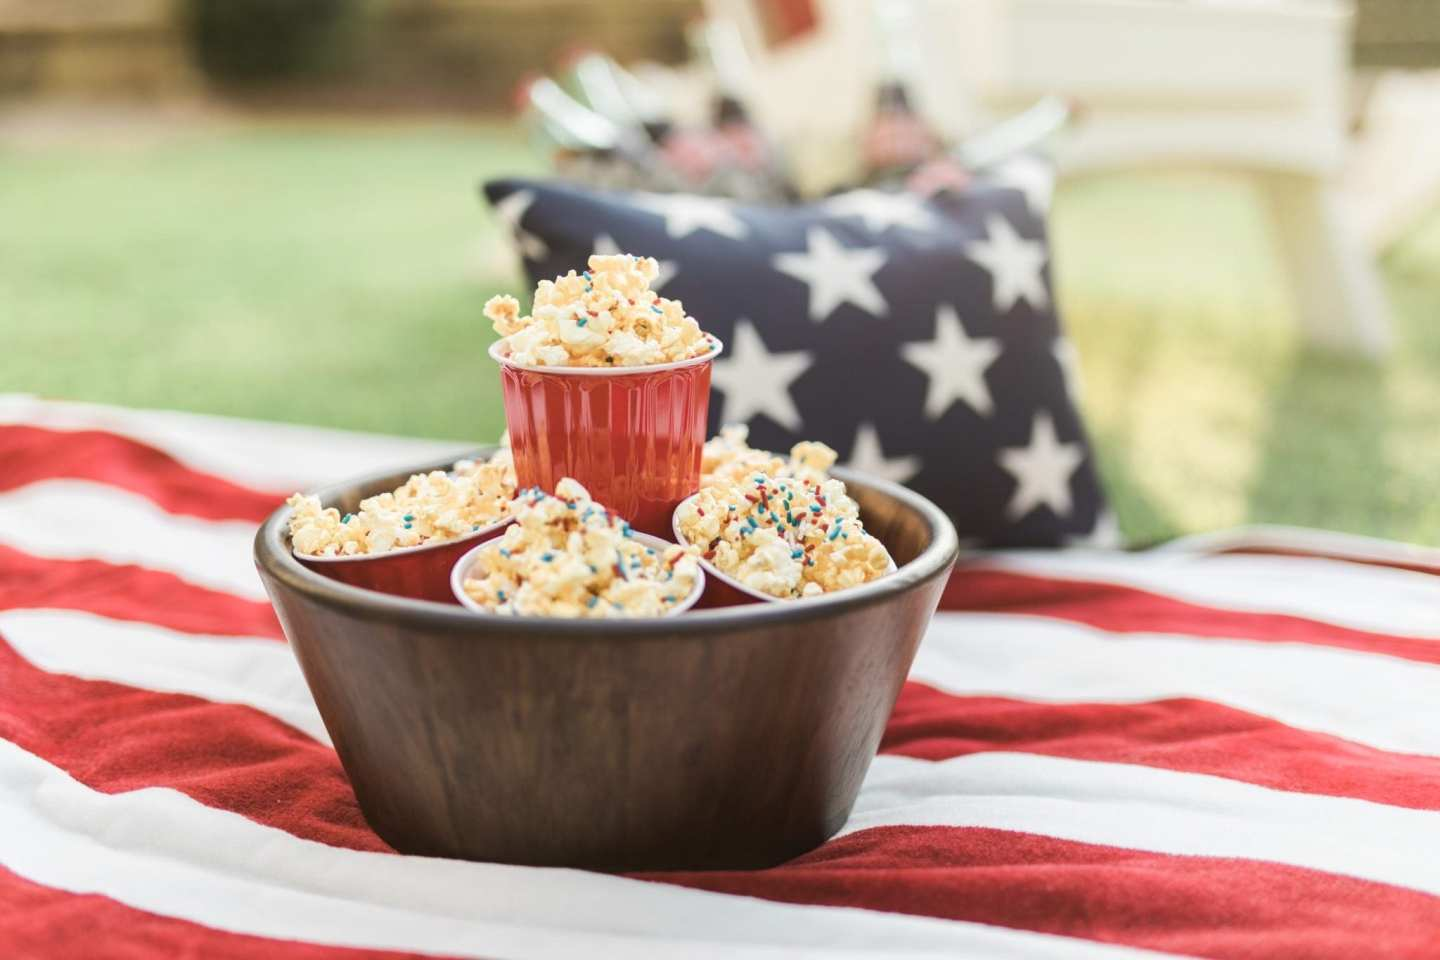 Fun 4th of july food ideas with popcorn with sprinkles for kids and easy fourth of july food ideas for everyone.